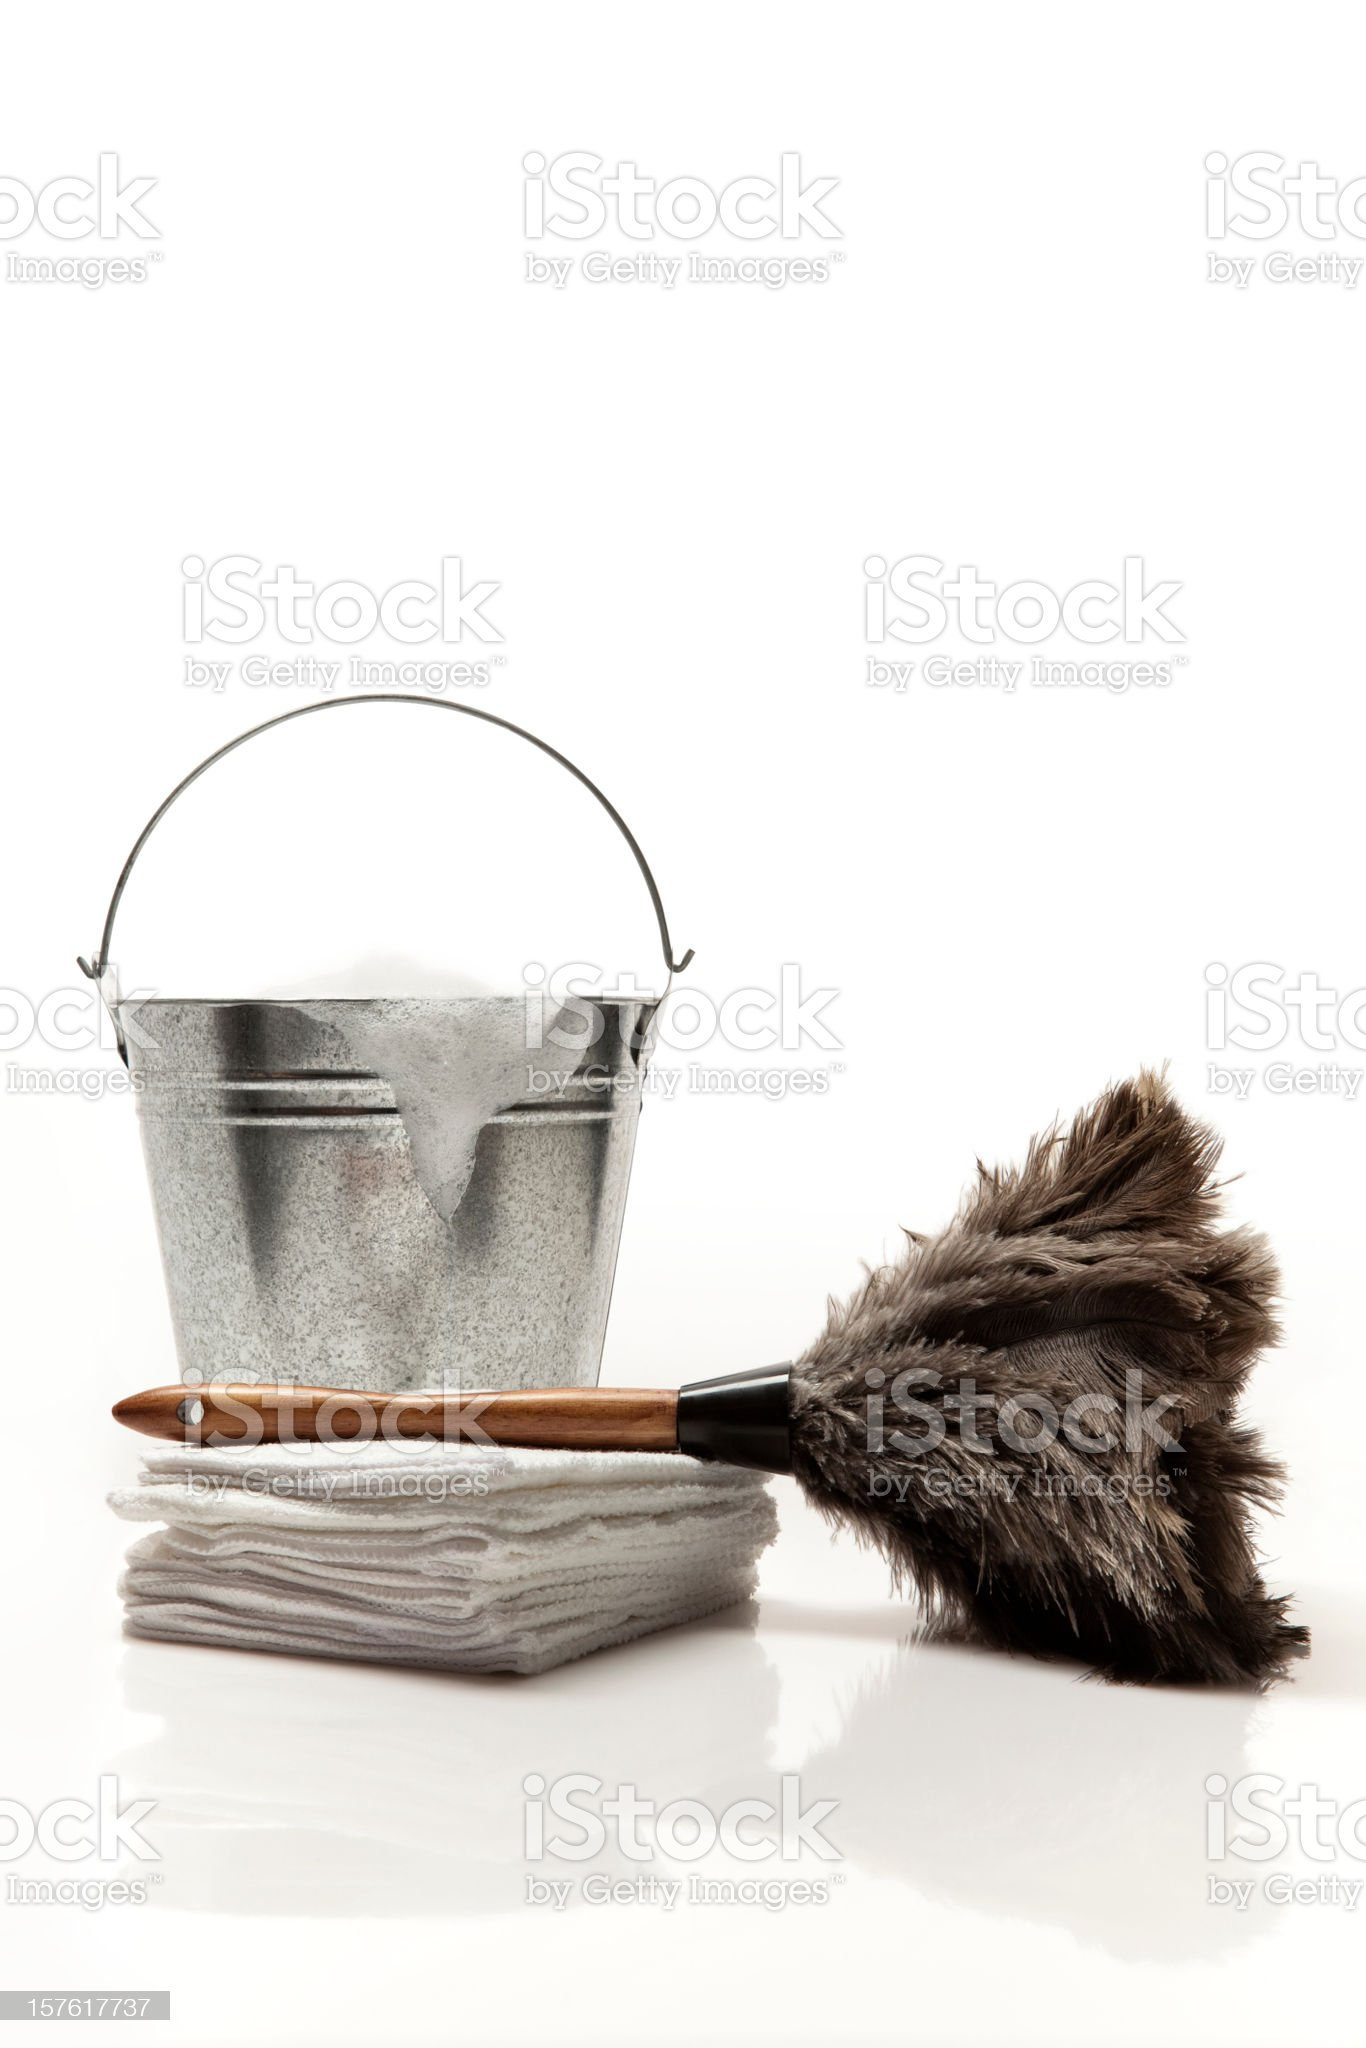 Feather duster with busker and towels royalty-free stock photo